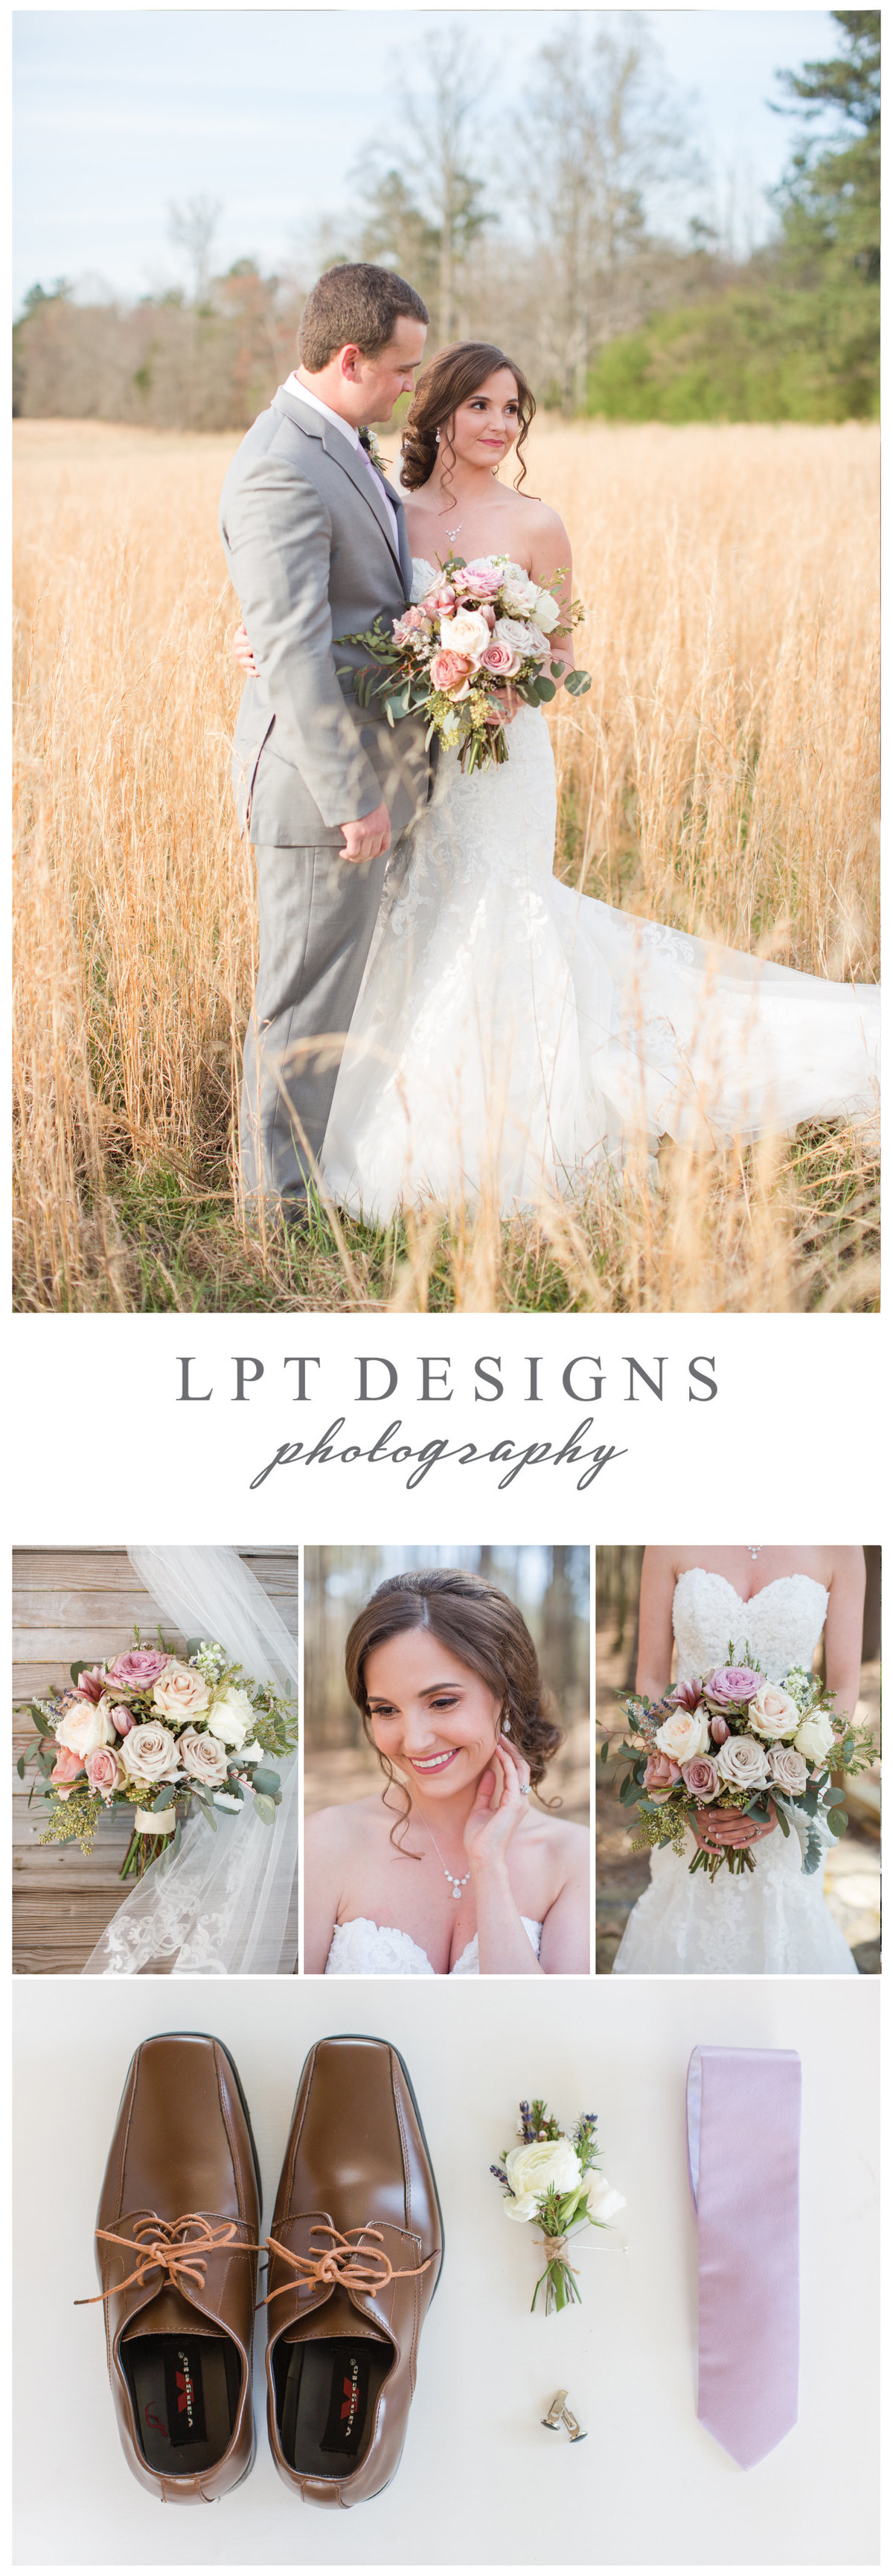 lpt_designs_photography_lydia_thrift_gadsden_alabama_fine_art_wedding_photographer_ar_1